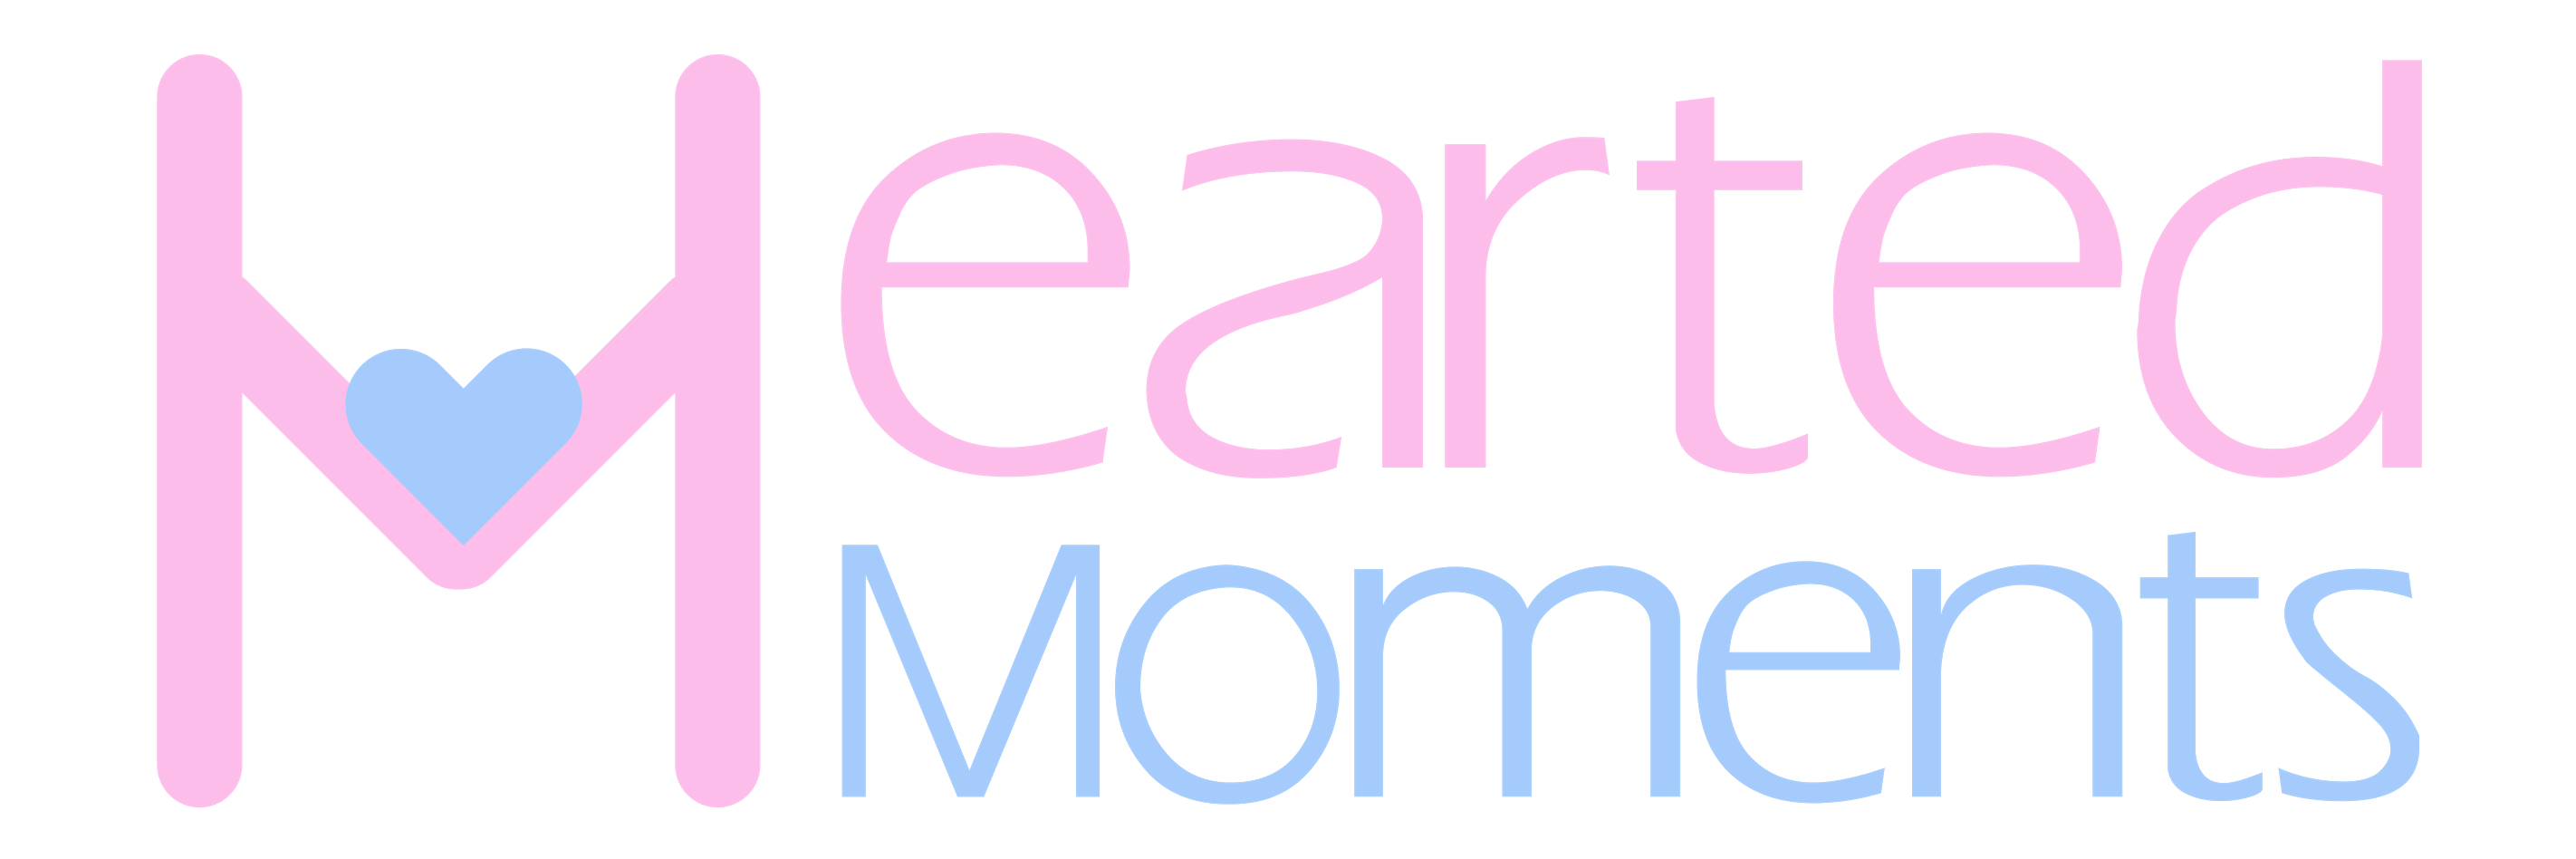 heartedmoments_logo_horizontal-01